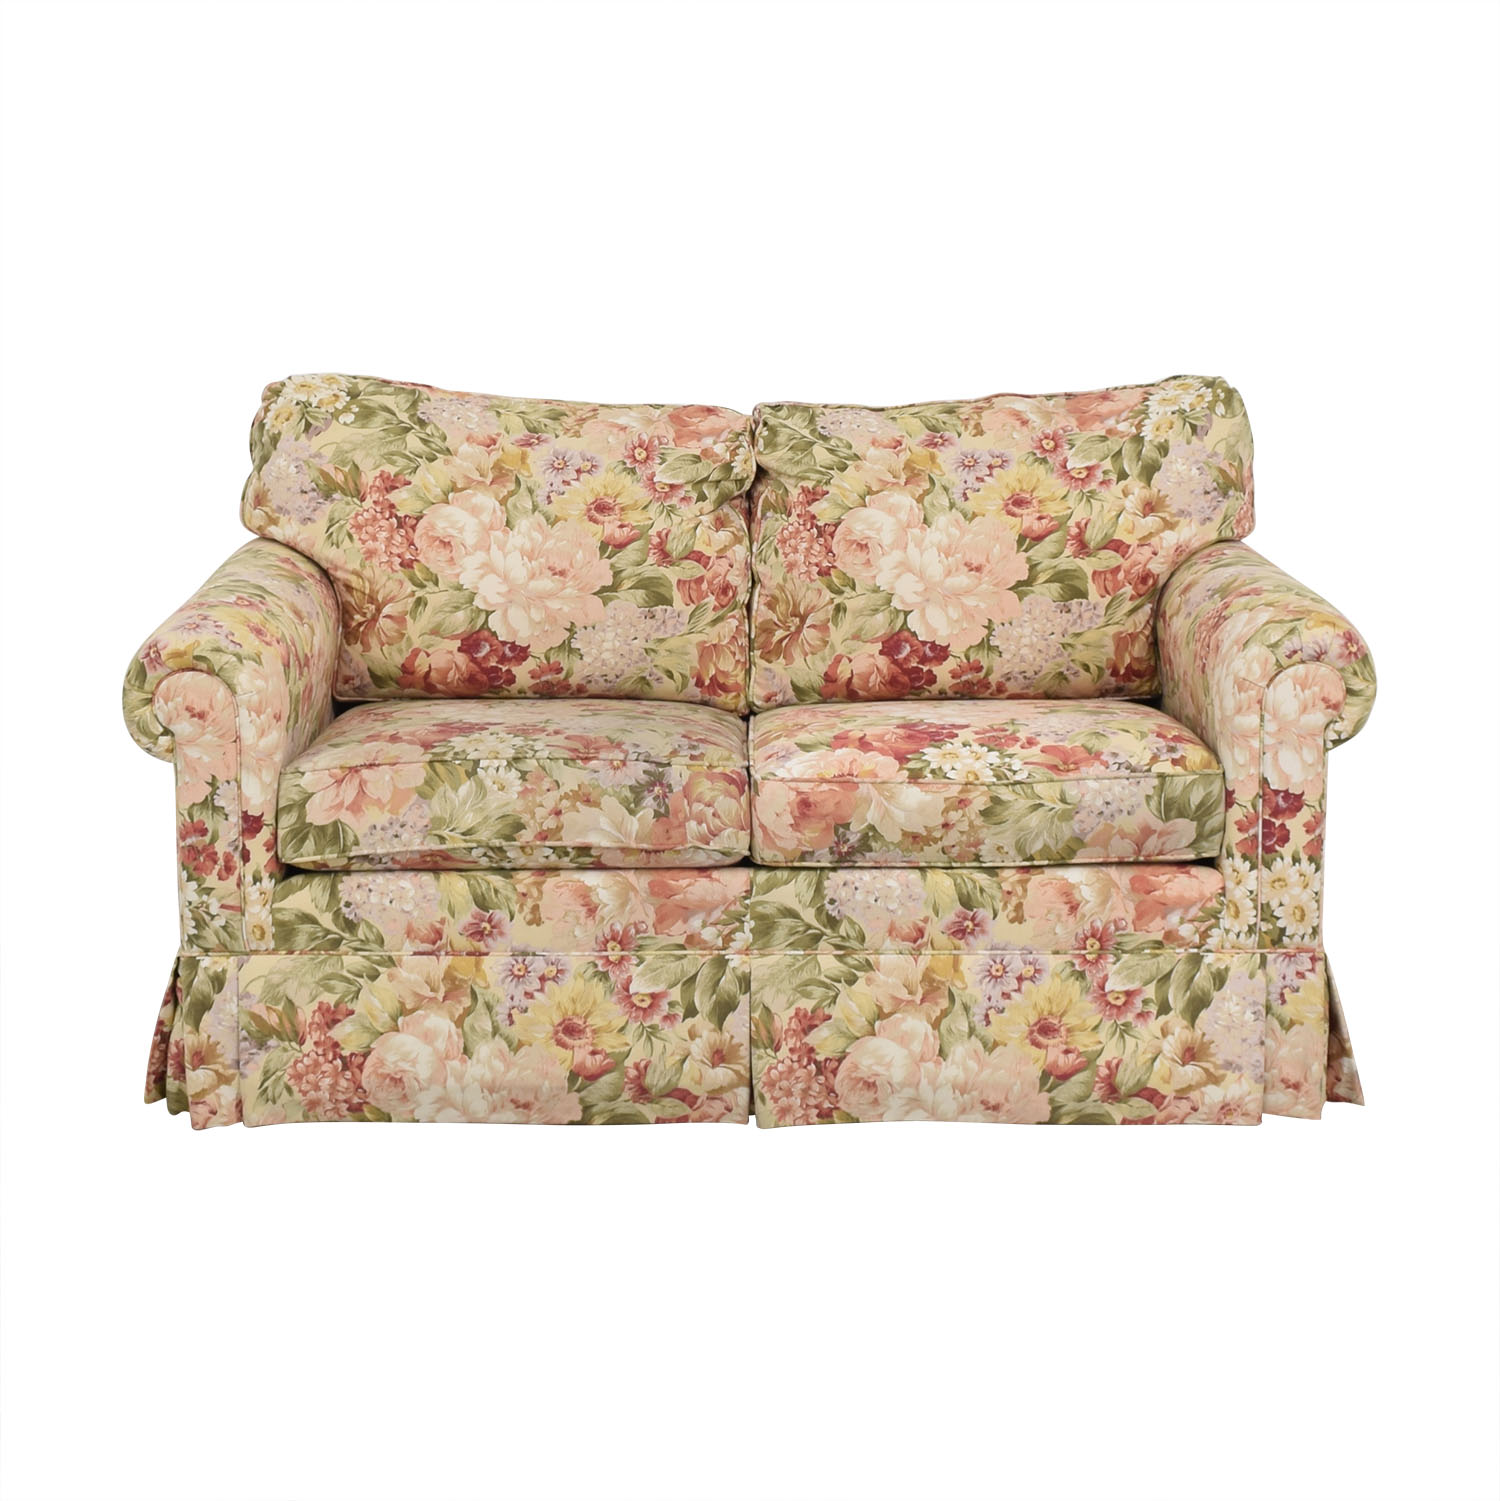 Ethan Allen Ethan Allen Floral Slipcovered Loveseat price